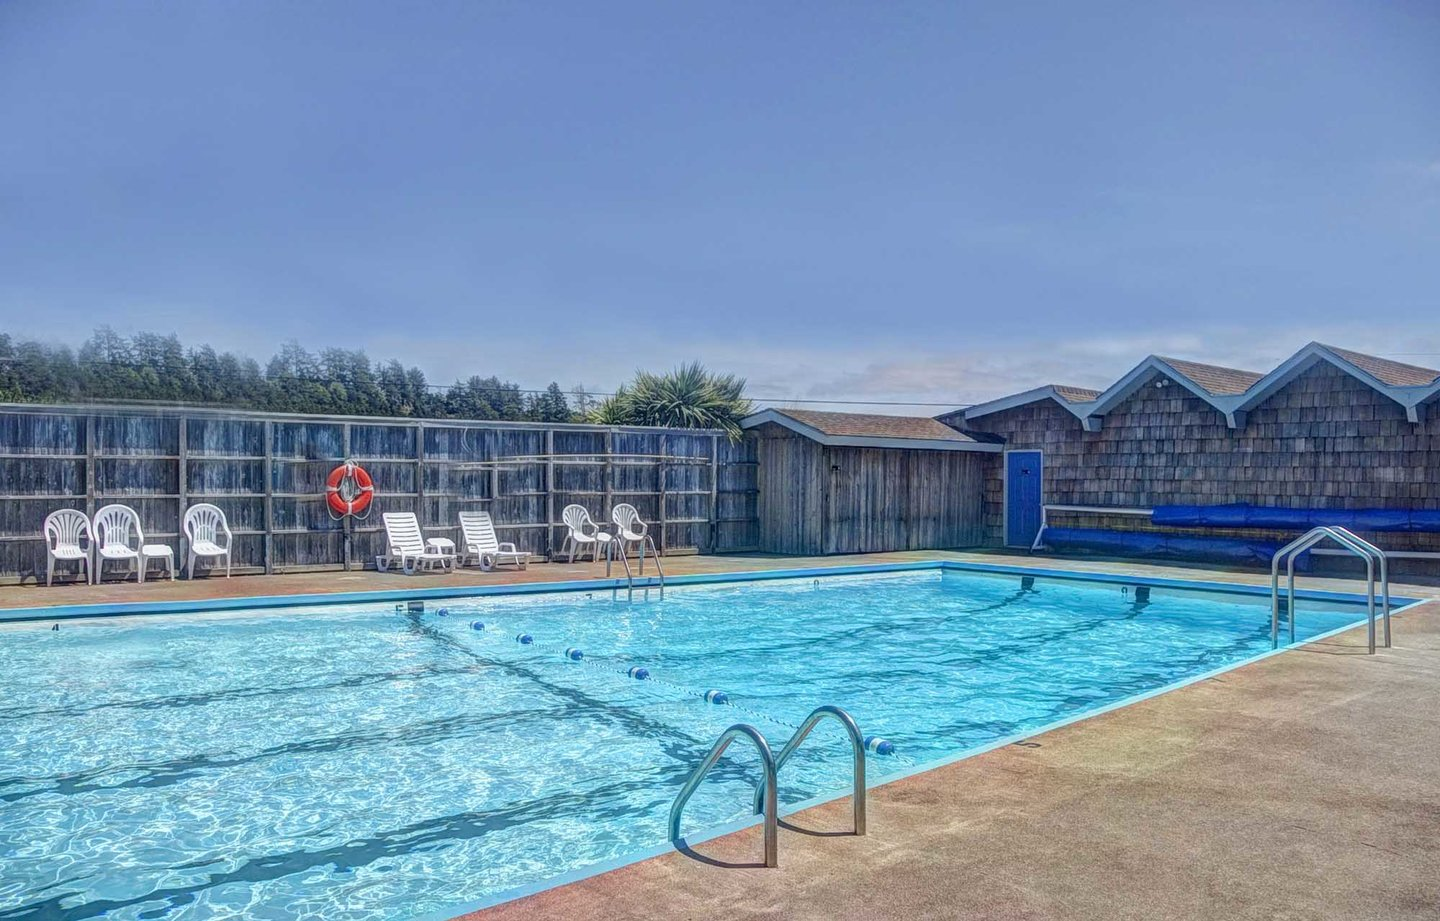 You can visit the Bayshore Club during the summer and take advantage of the pool for a small fee.